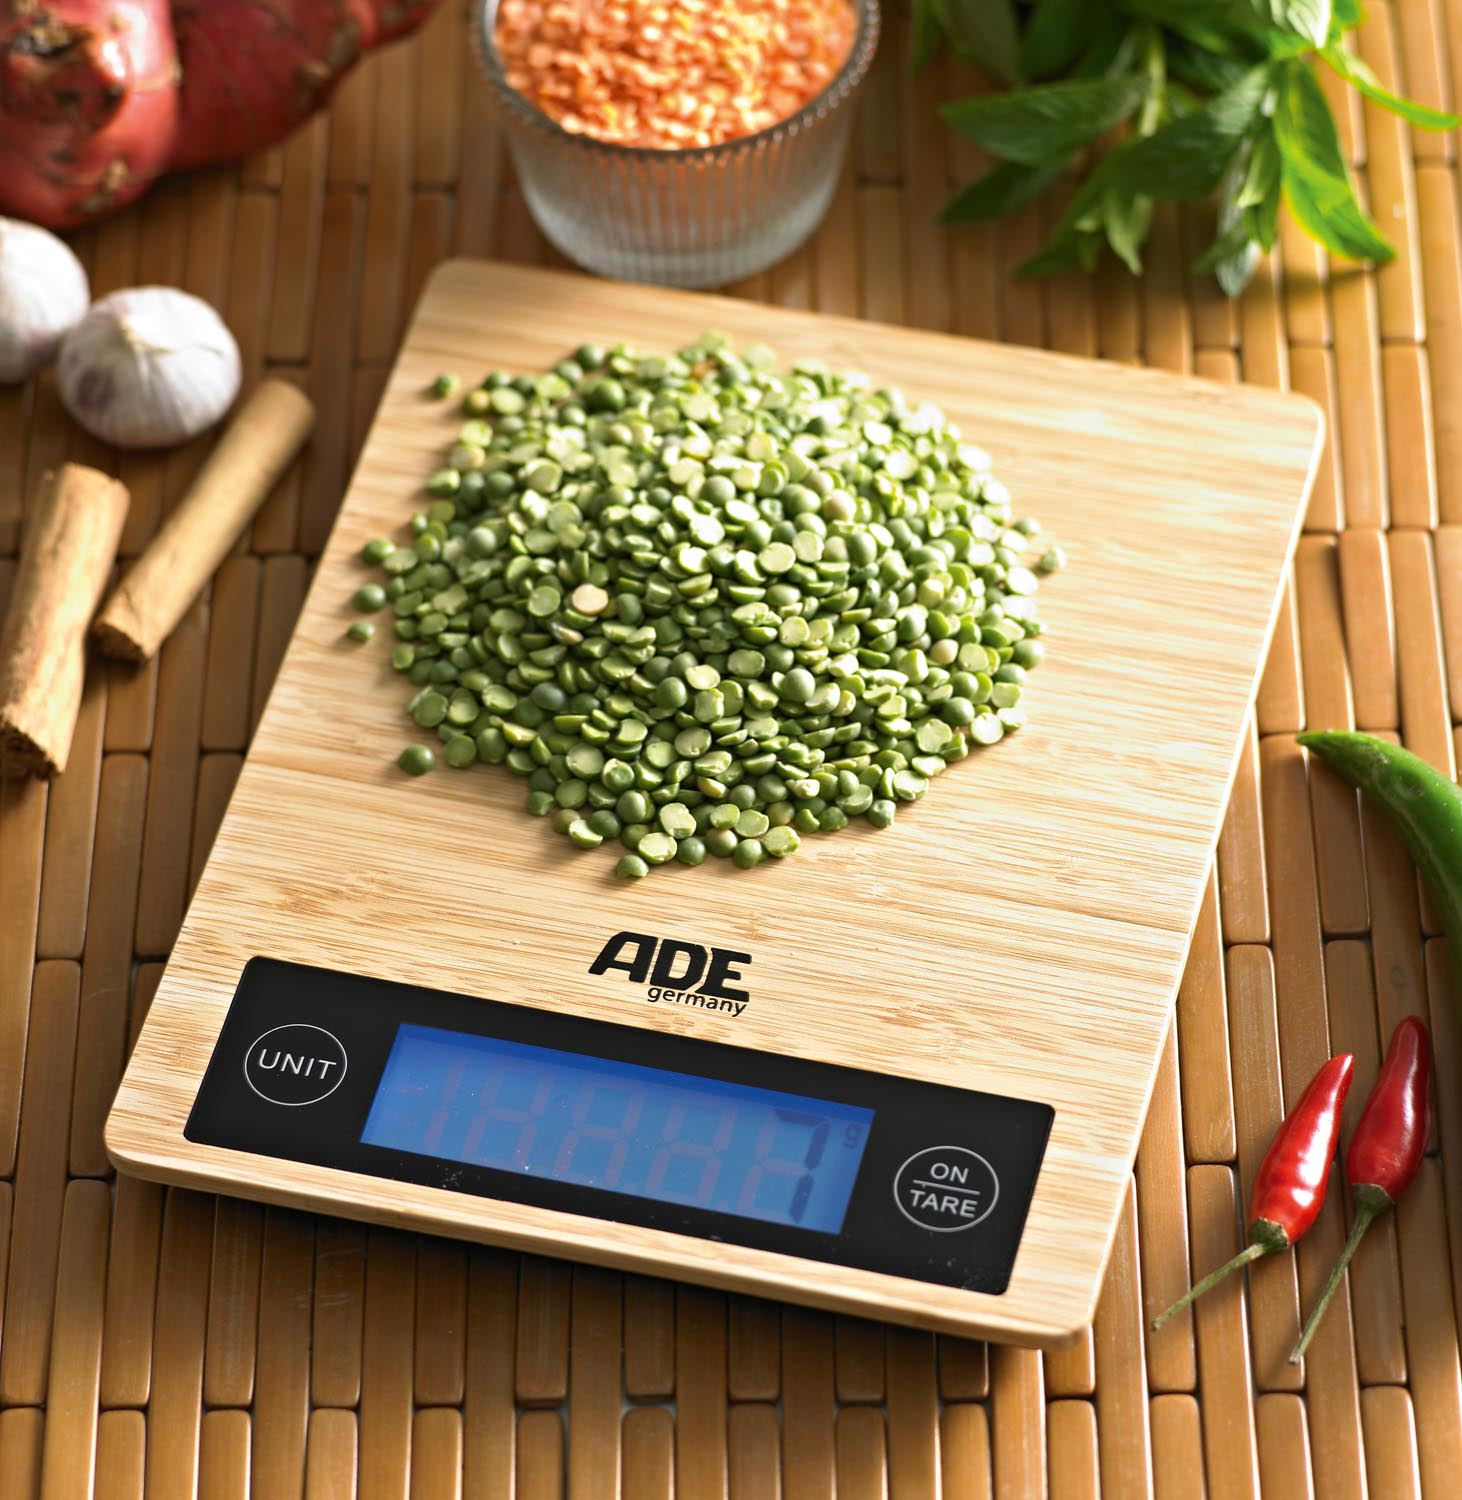 ADE bamboo scale-LS